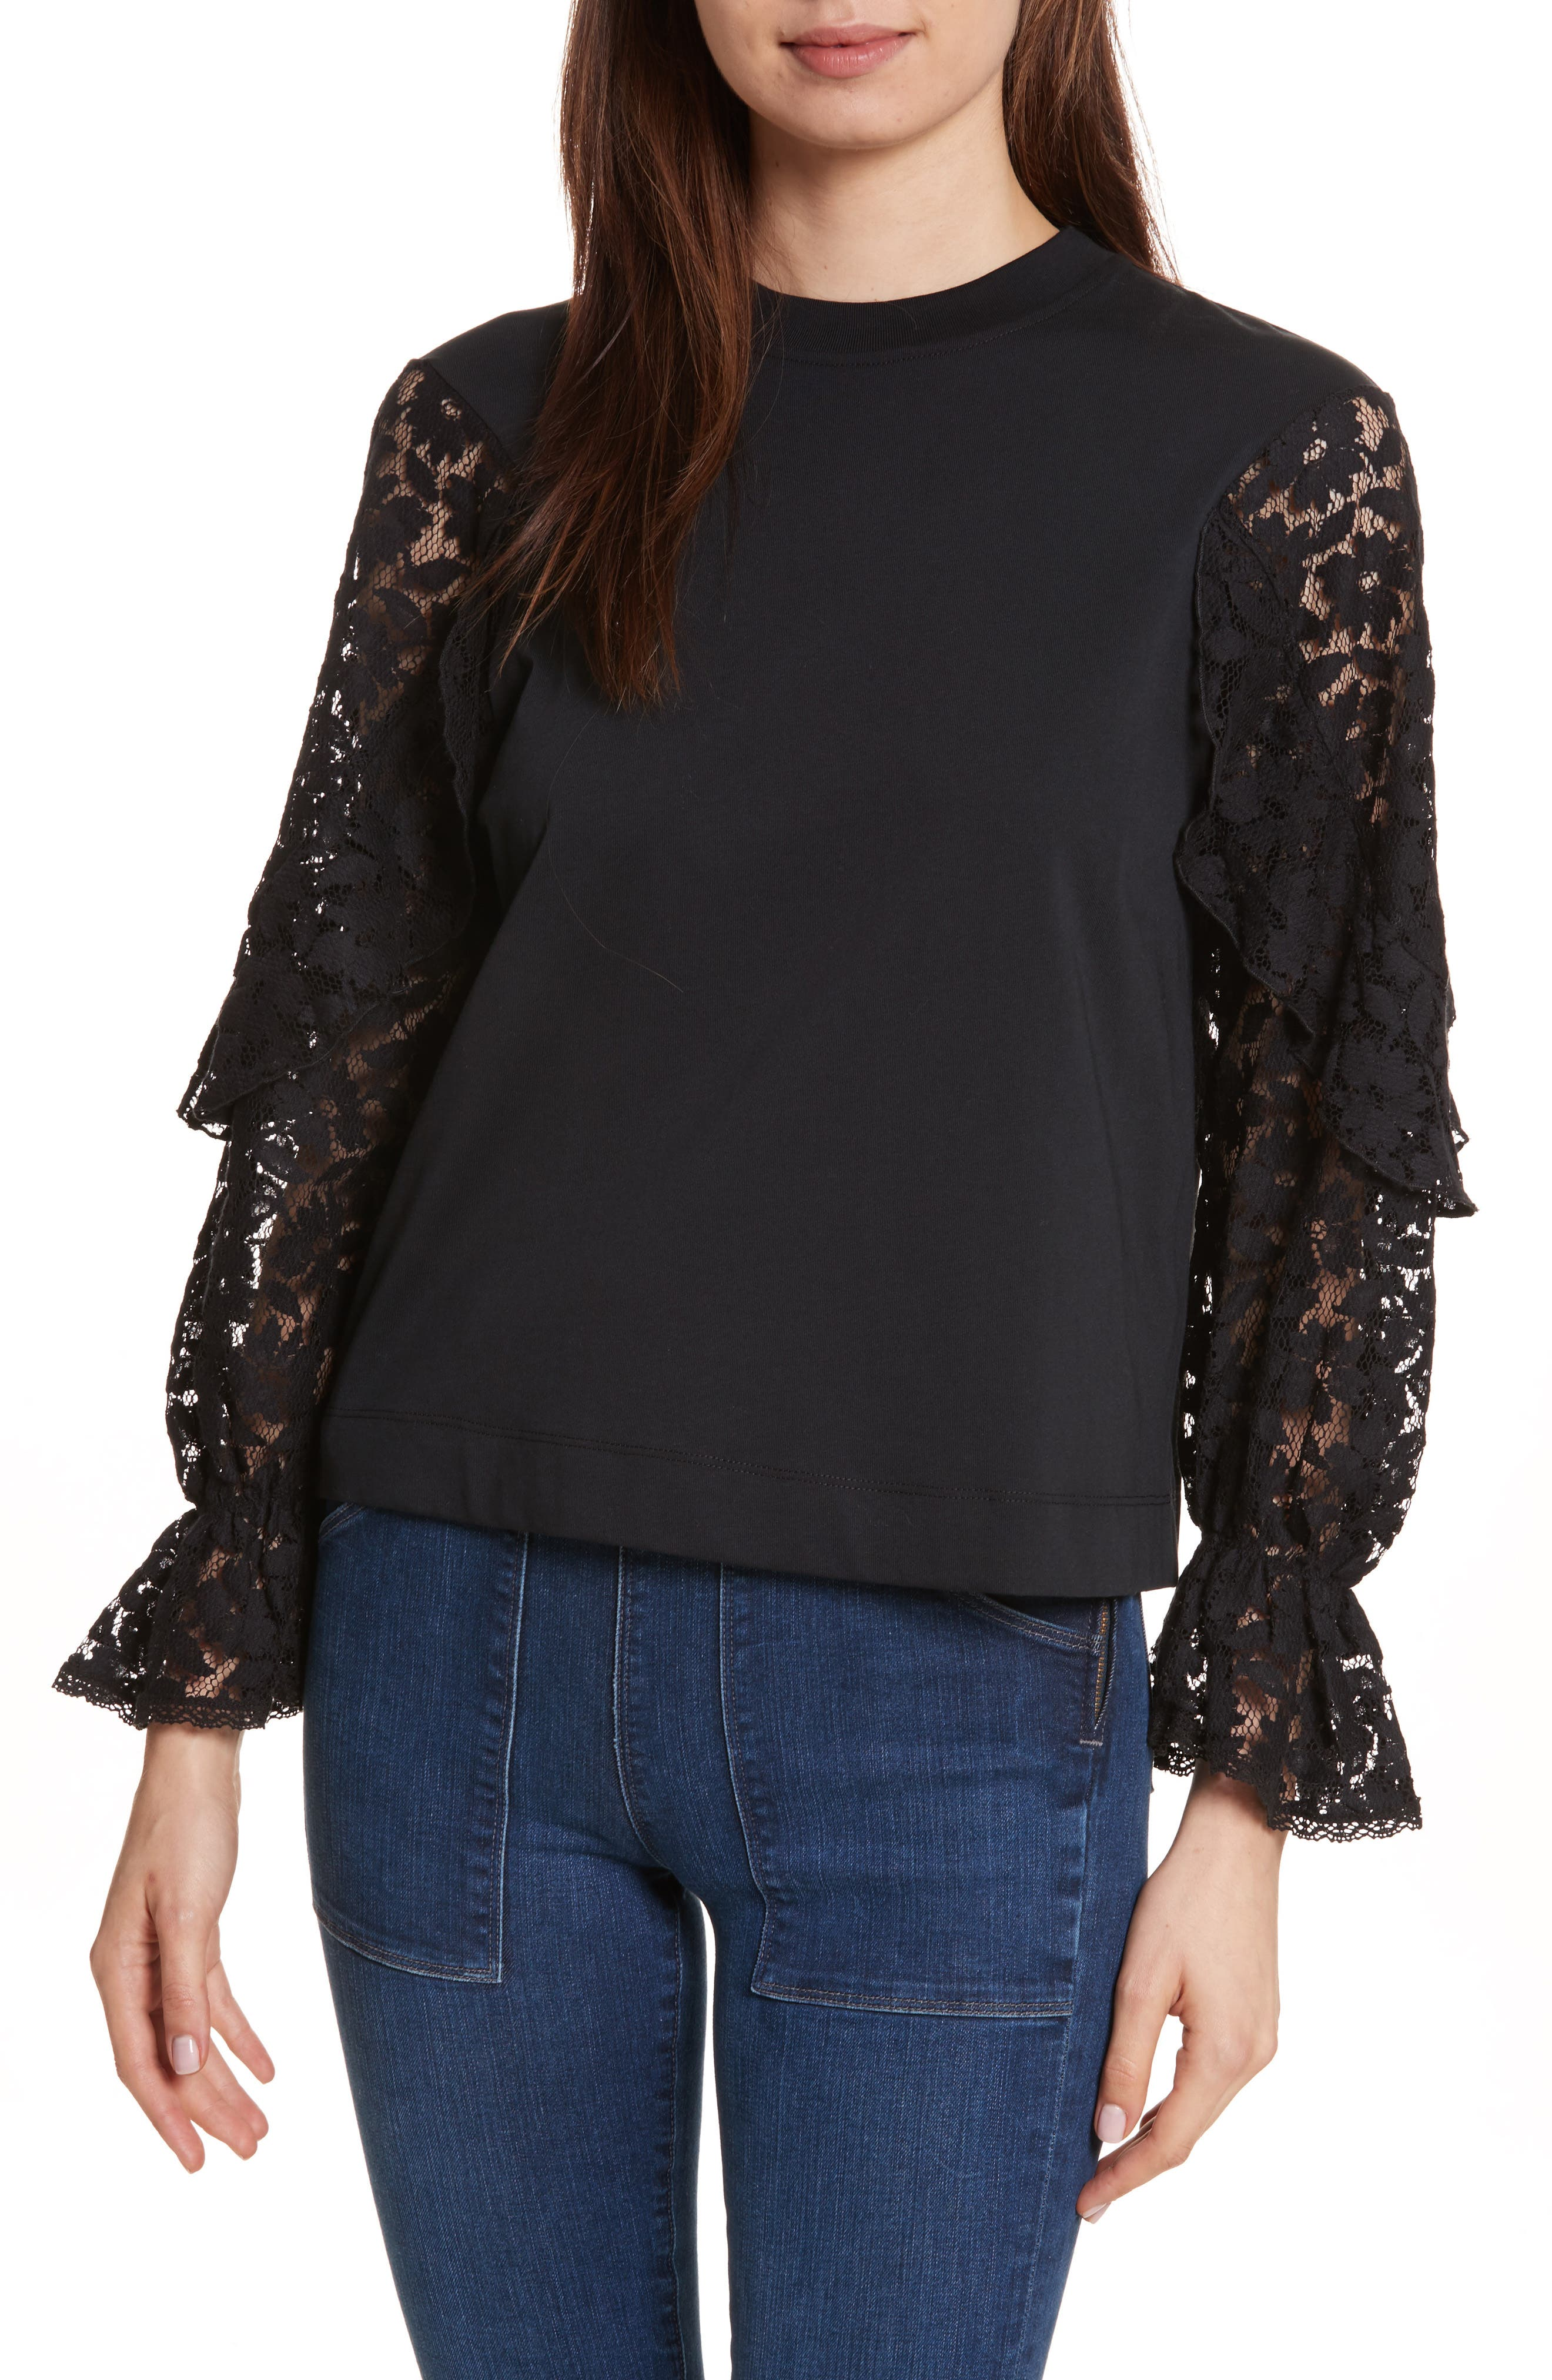 Main Image - See by Chloé Ruffle Sleeve Sweater